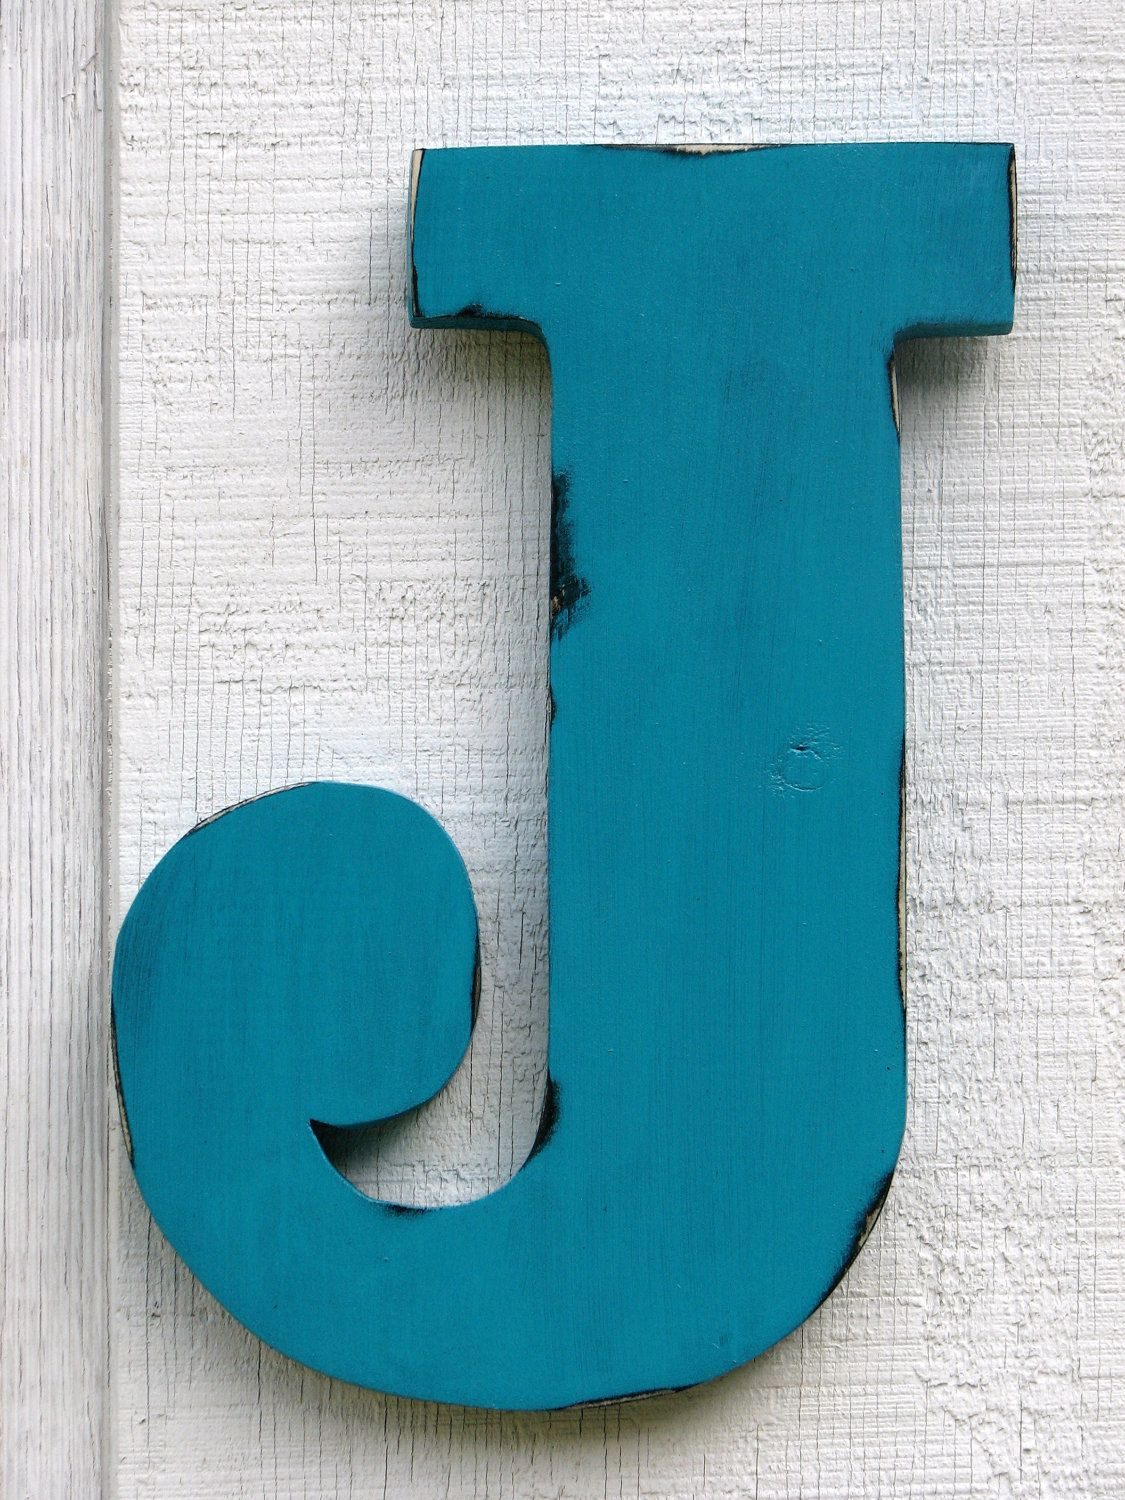 Rustic Wooden Letter J Distressed Painted Island Green,12